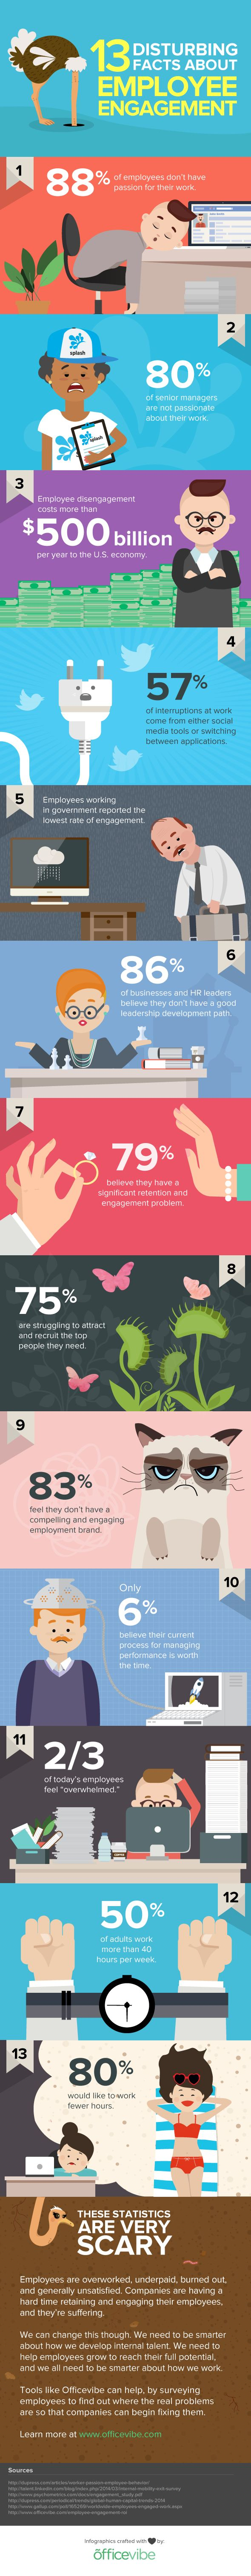 #Employee #Engagement: 13 Disturbing Facts About Employee Engagement #Infographic